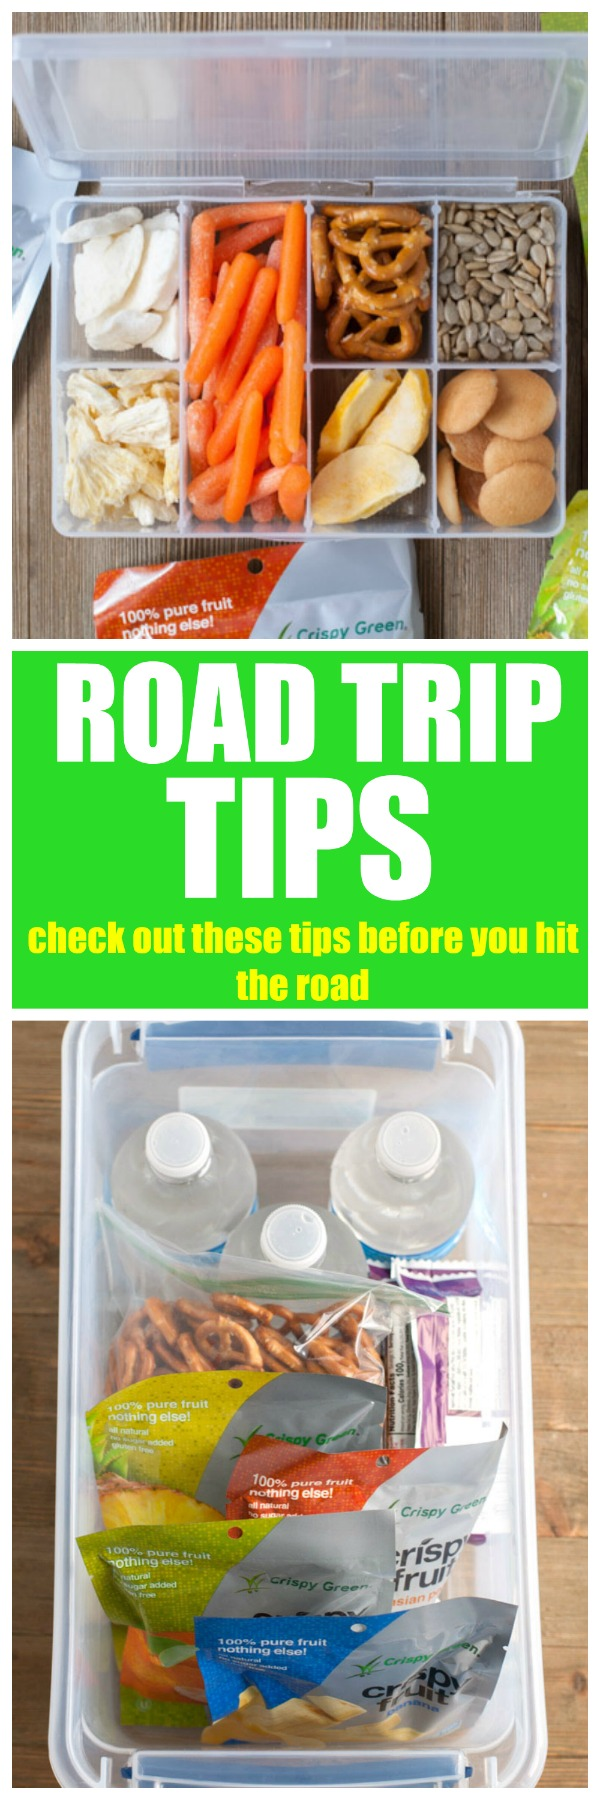 Road tip trips and tricks. Ideas for everything you will need in the car including a video on healthy snacks. #travel #vacation #crispygreen @crispygreen #snacks #healthysnacks